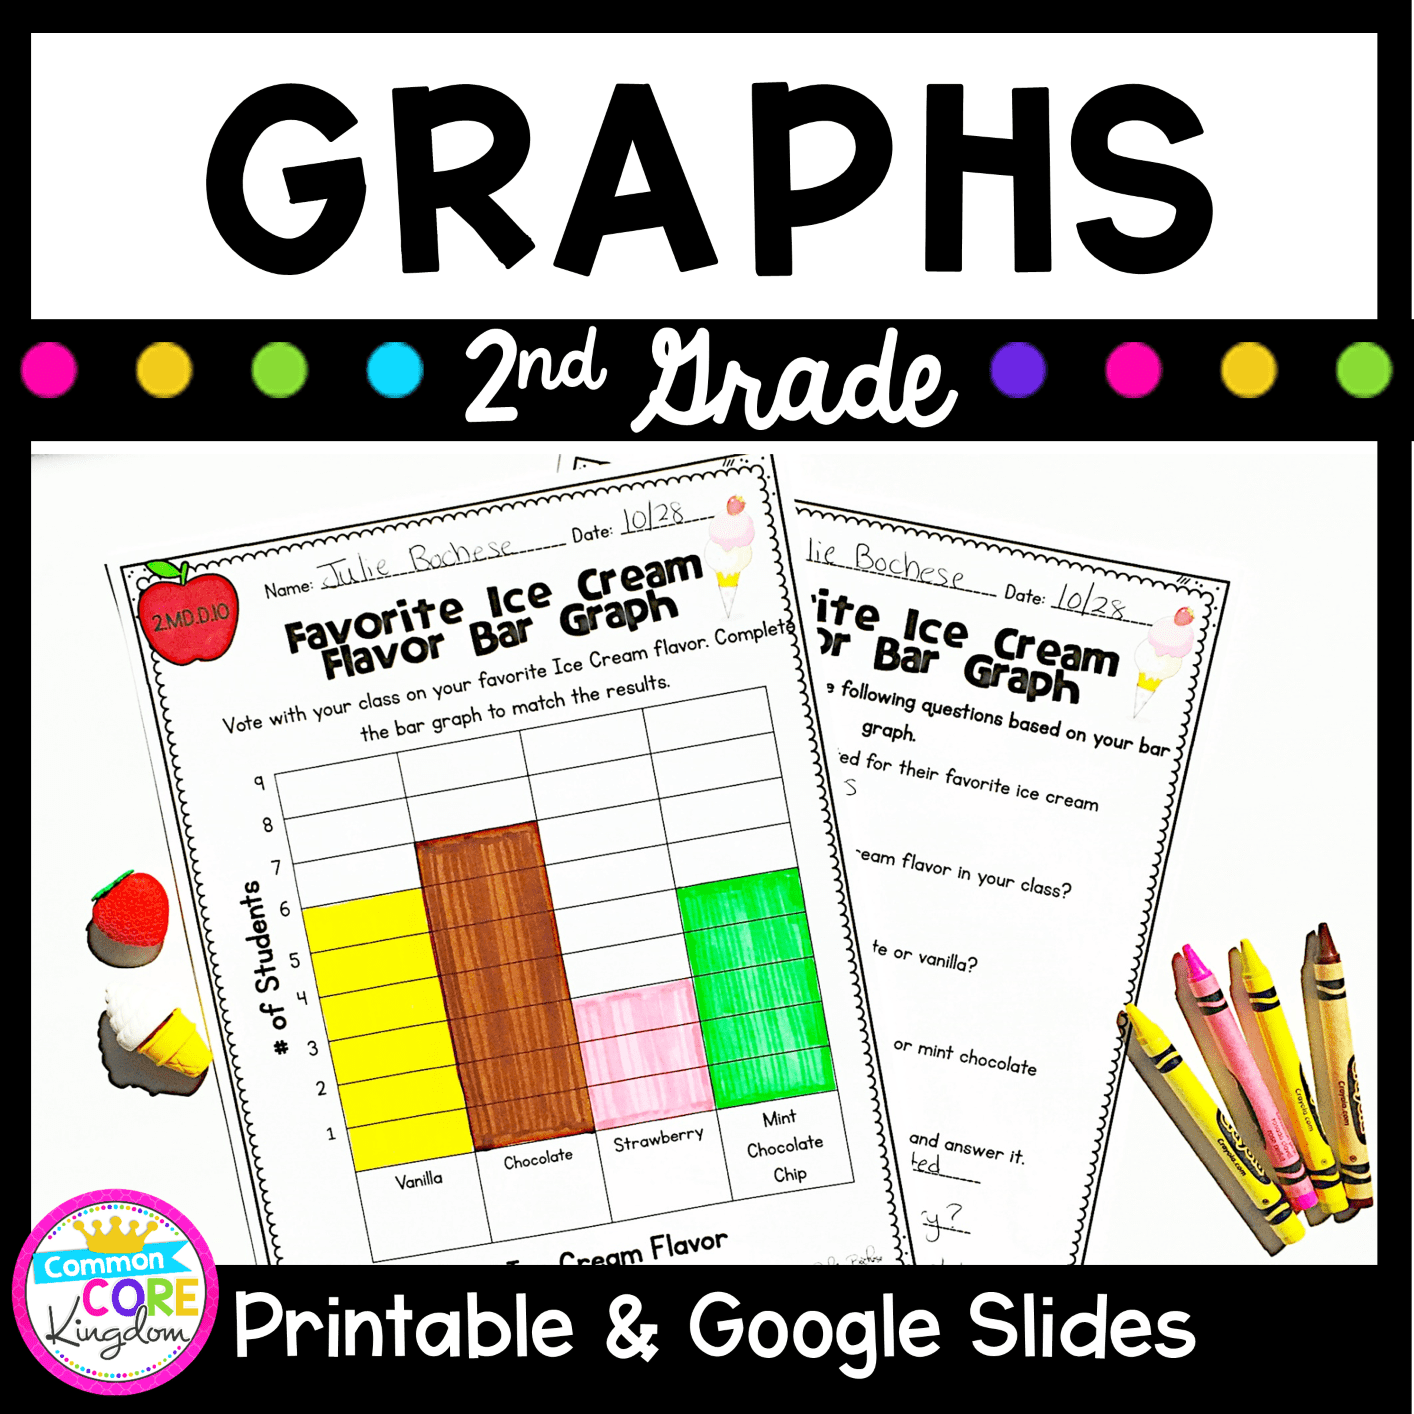 small resolution of Graphs - 2nd Grade 2.MD.D.10 with PDF \u0026 Google Slides Distance Learning  Pack   Common Core Kingdom